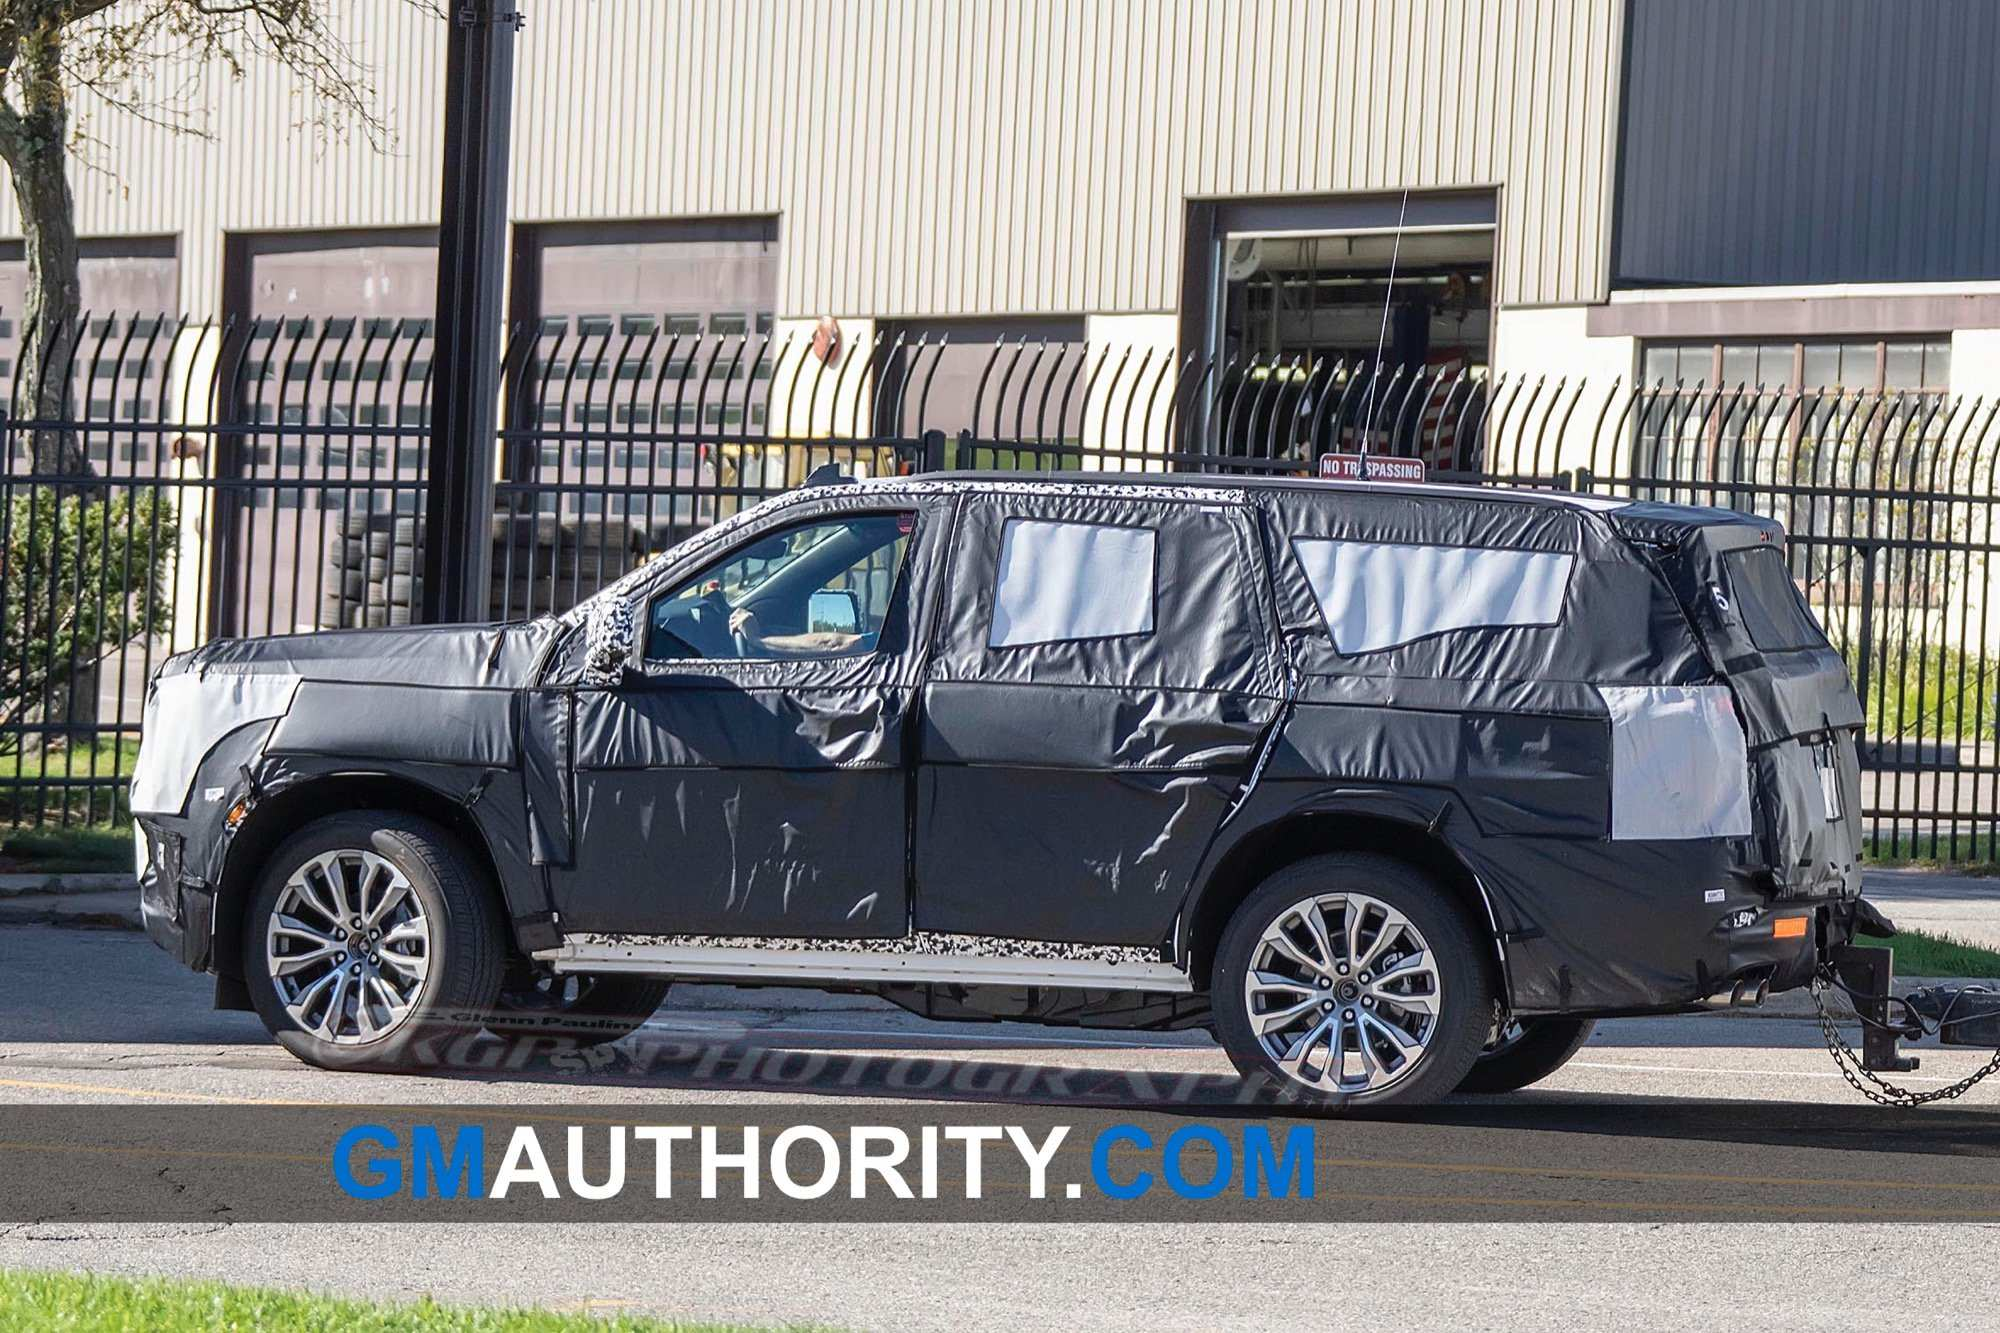 62 New 2020 GMC Yukon Xl Rumors